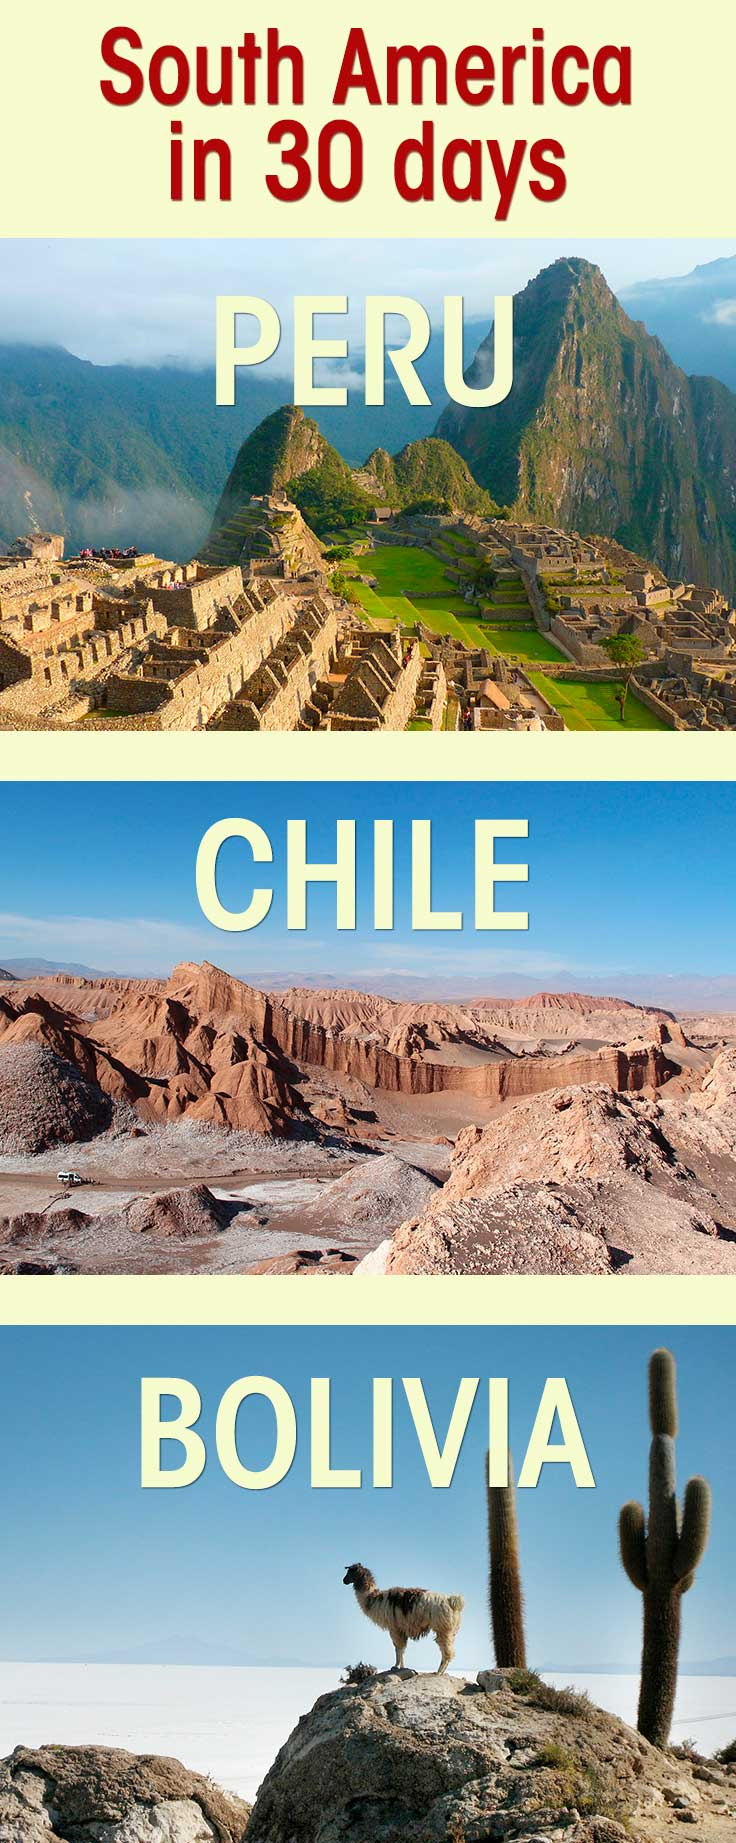 Multiple images together in one frame. First image is of the iconic view of Machu Picchu Peru, second image of the red rocked Atacama Desert landscape in northern Chile, final image of a Llama overlooking the salt flats of Uyuni in Bolivia. Text overlay saying: South America in 30 days Peru, Chile and Bolivia.